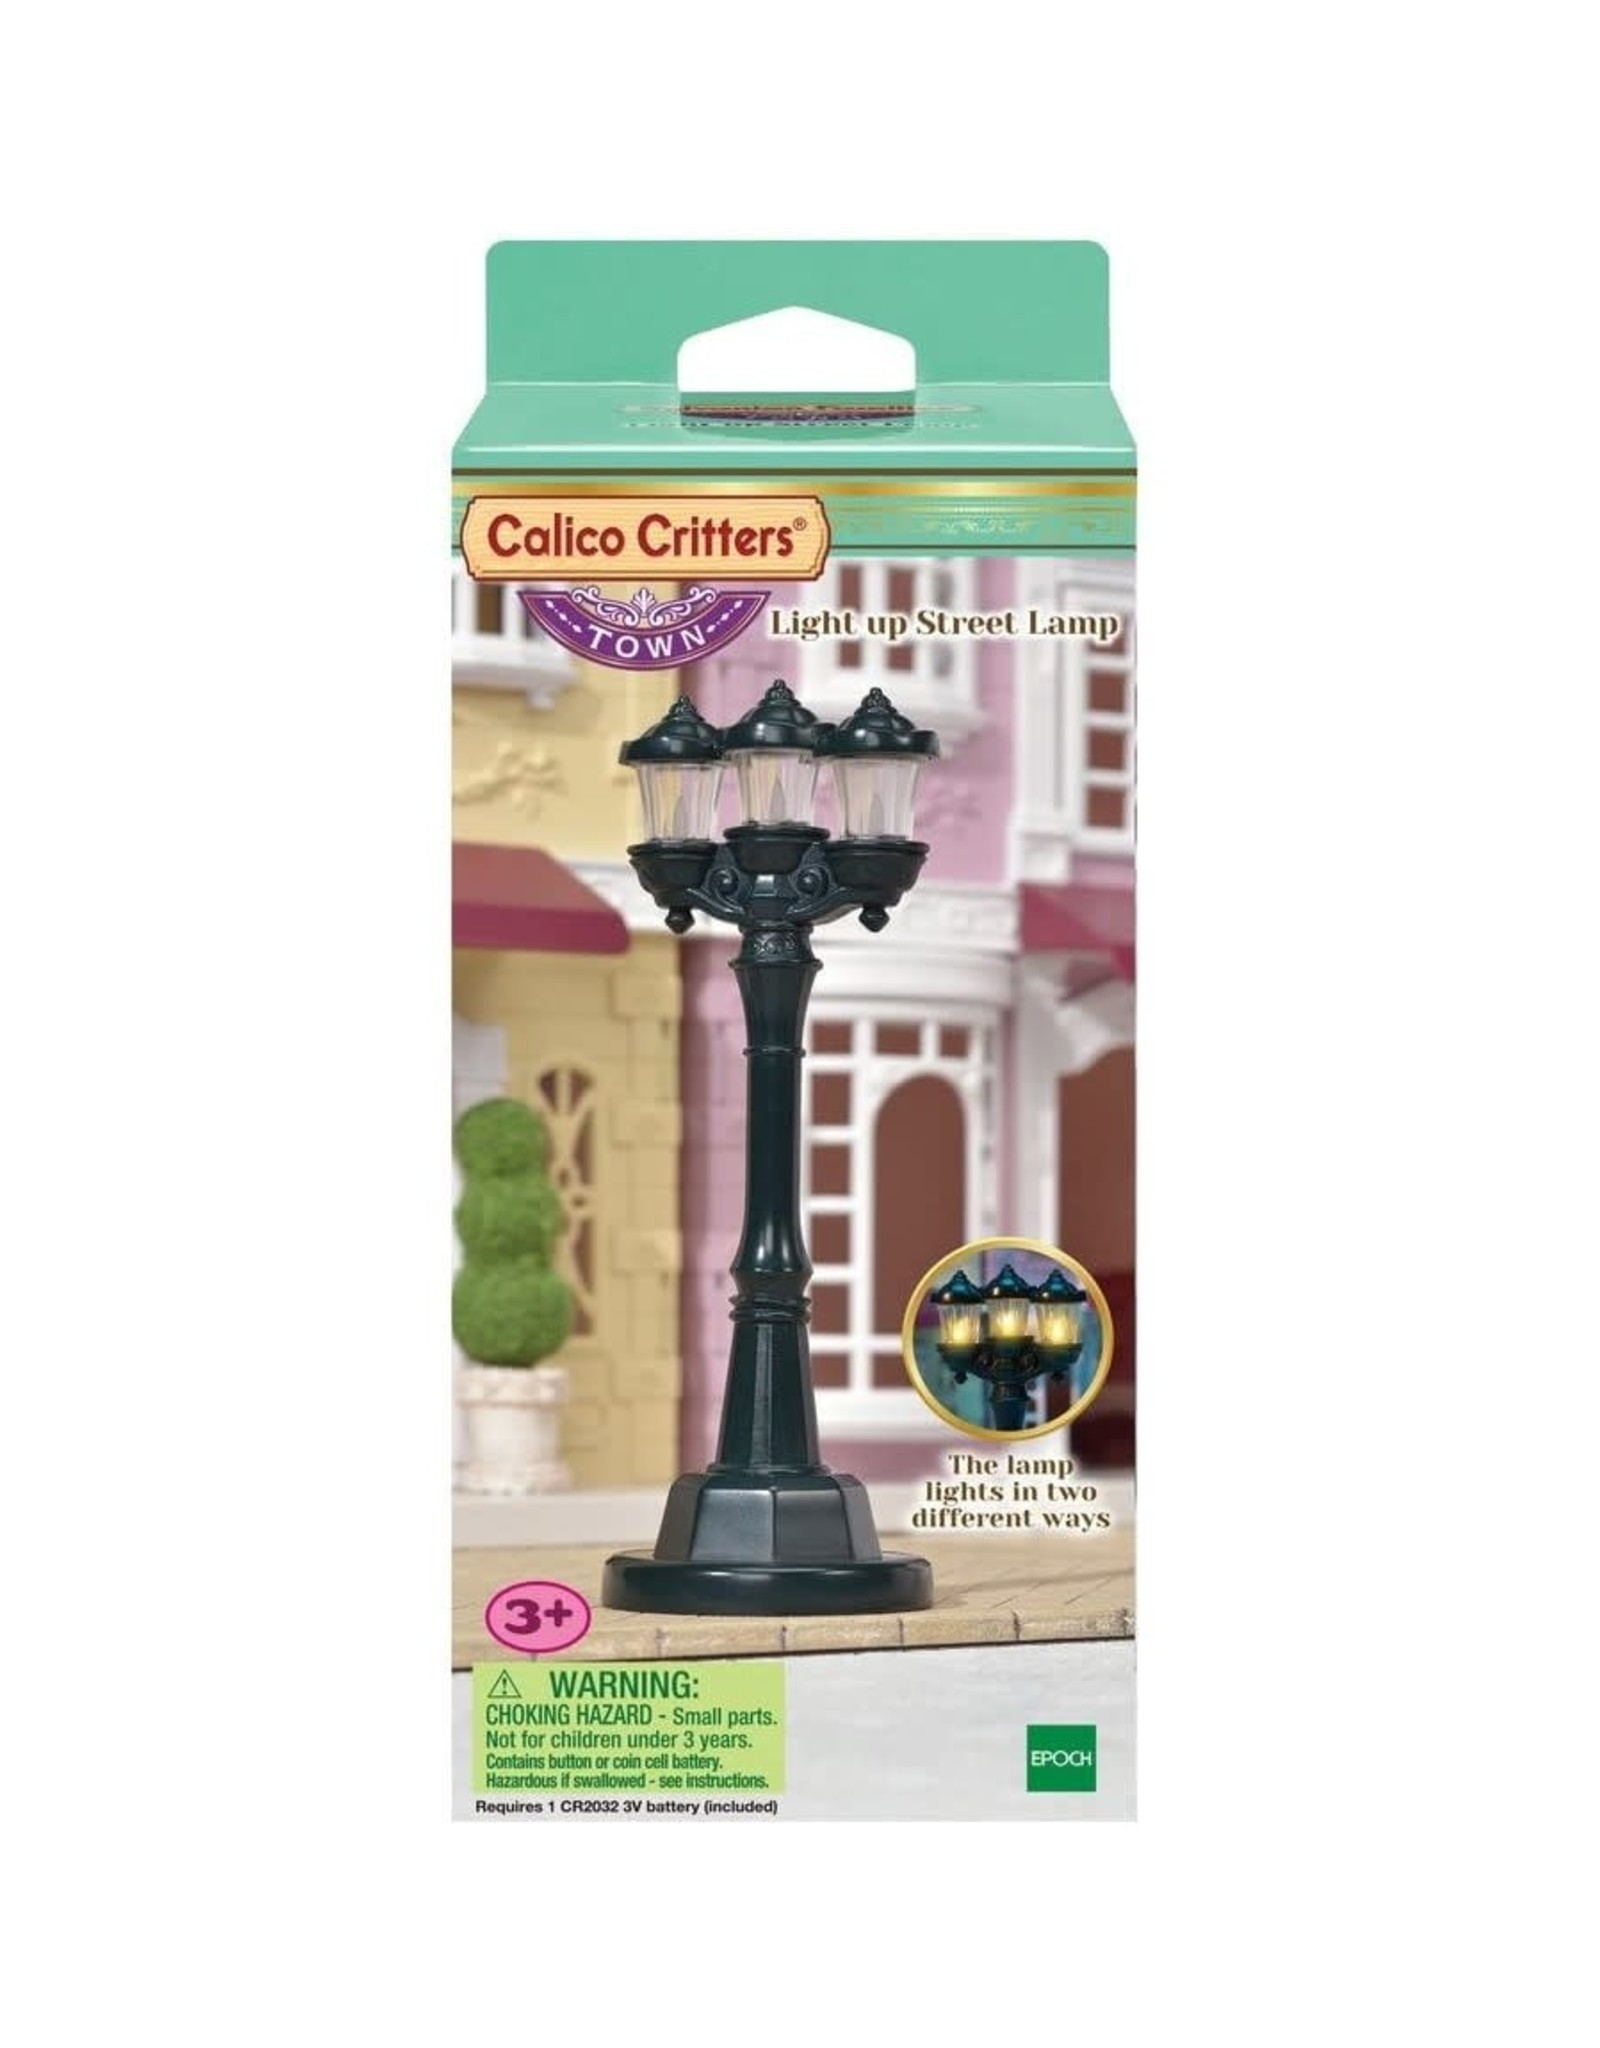 Calico Critters CC Light up Street Lamp